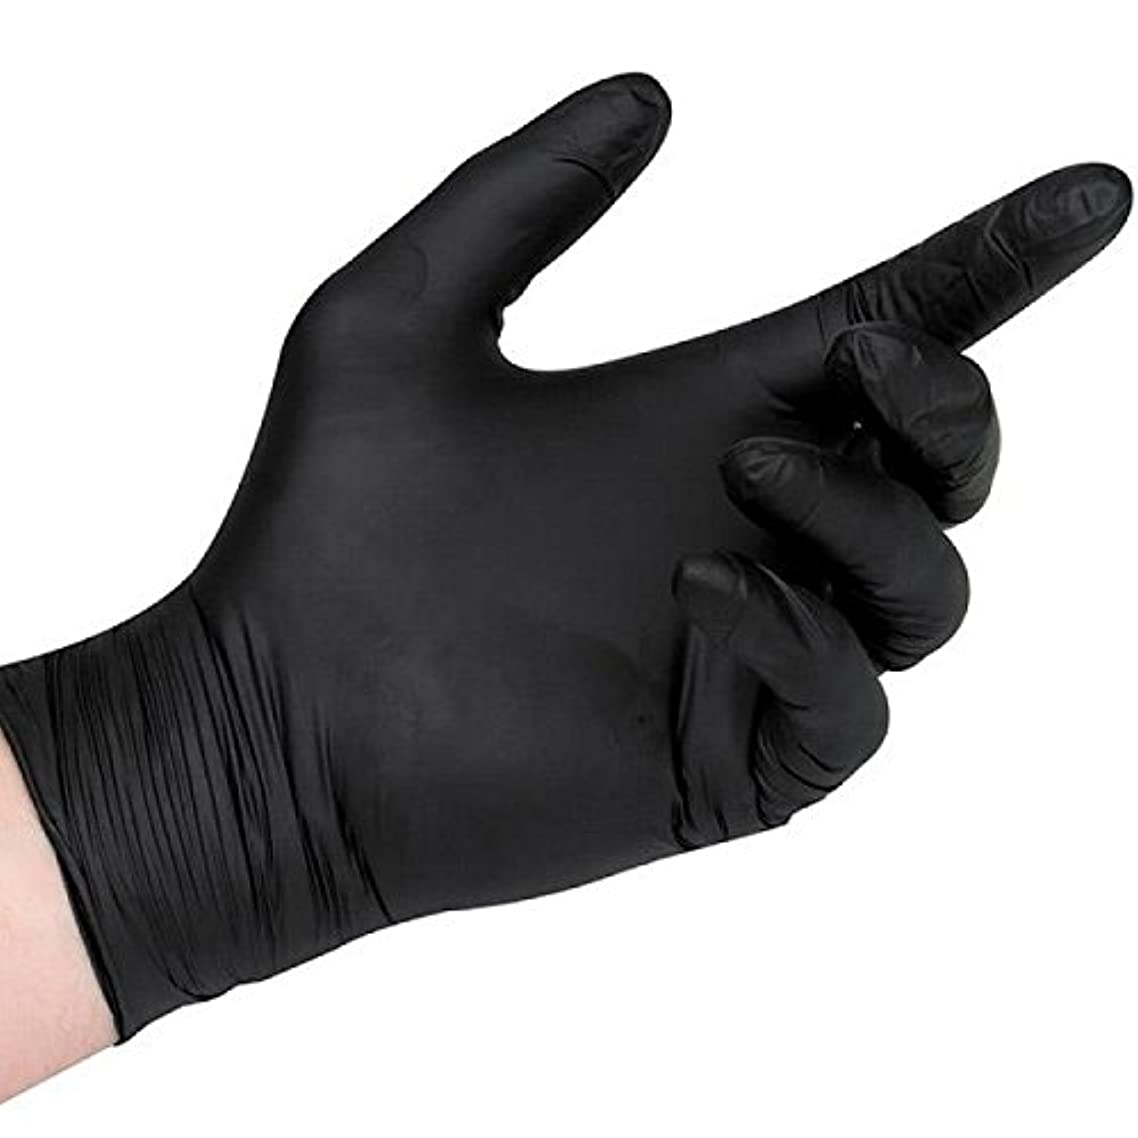 Black Nitrile Disposable Gloves, 5 Mil Thickness, Powder Free, Textured Fingertips, Latex Free, Heavy Duty (100, Medium)